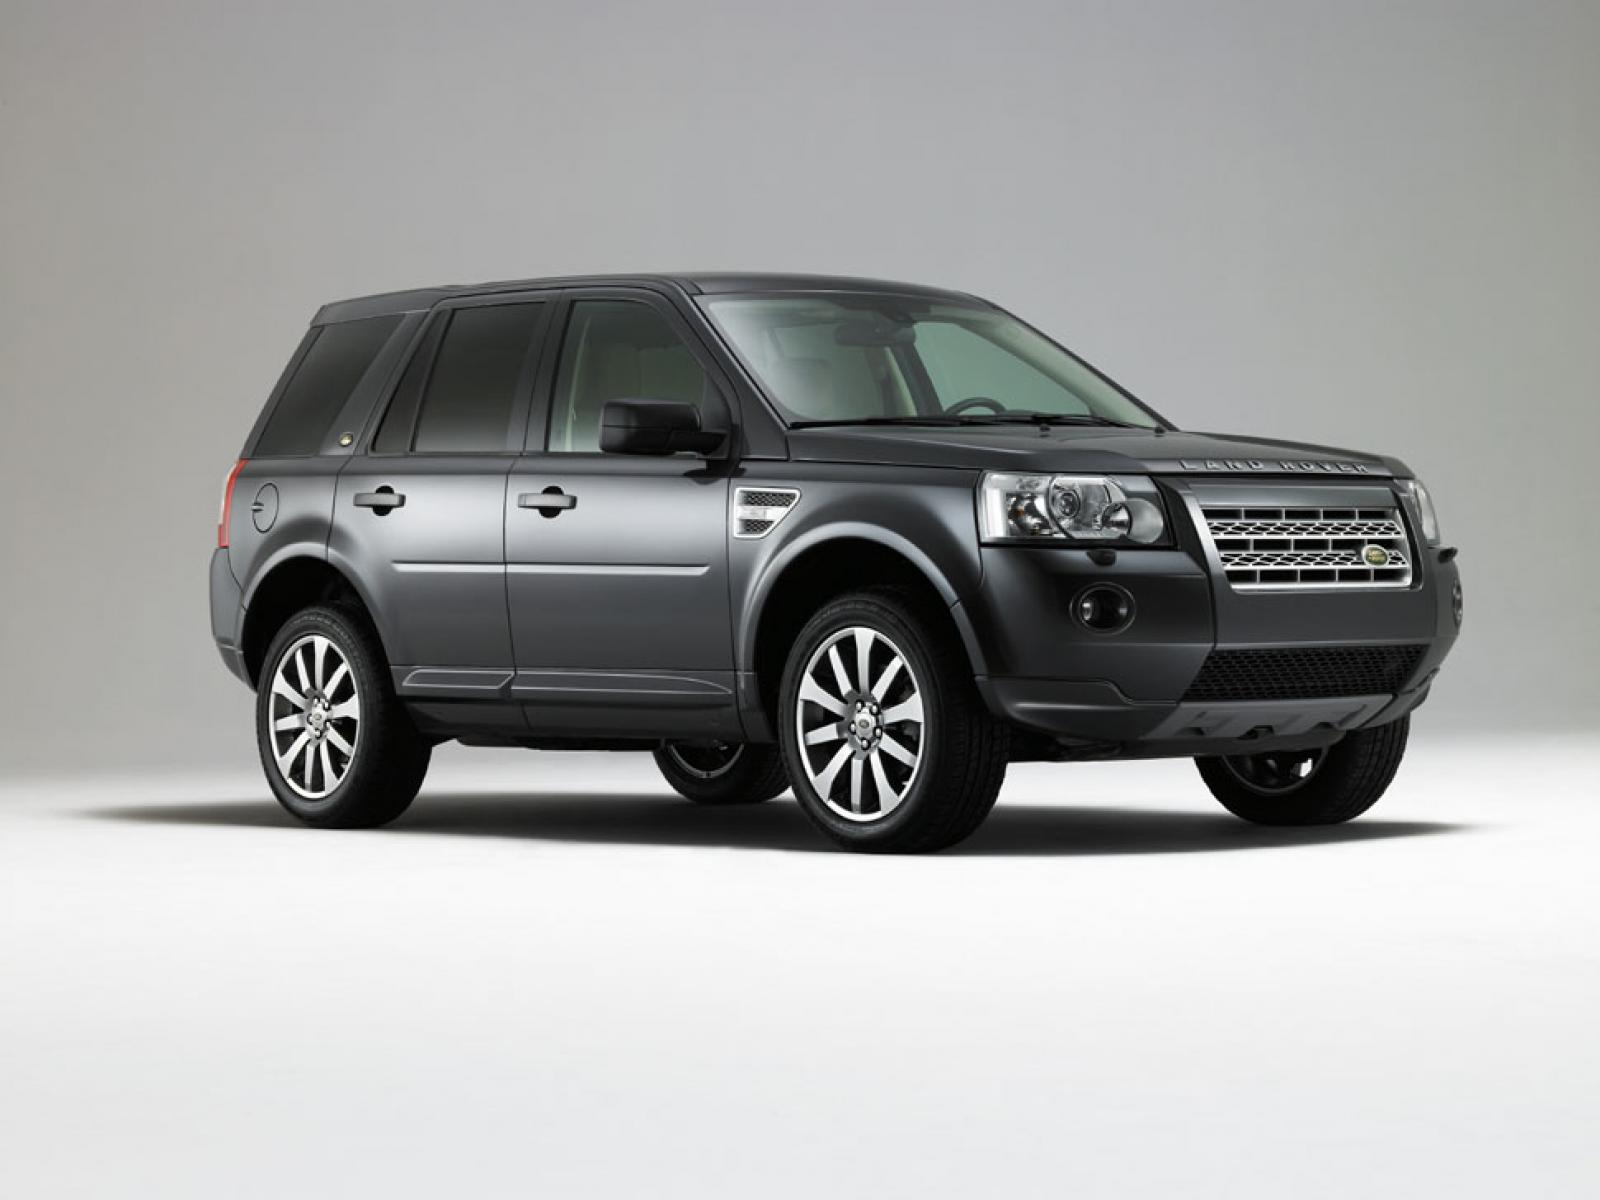 2009 Land Rover LR2 Information and photos ZombieDrive